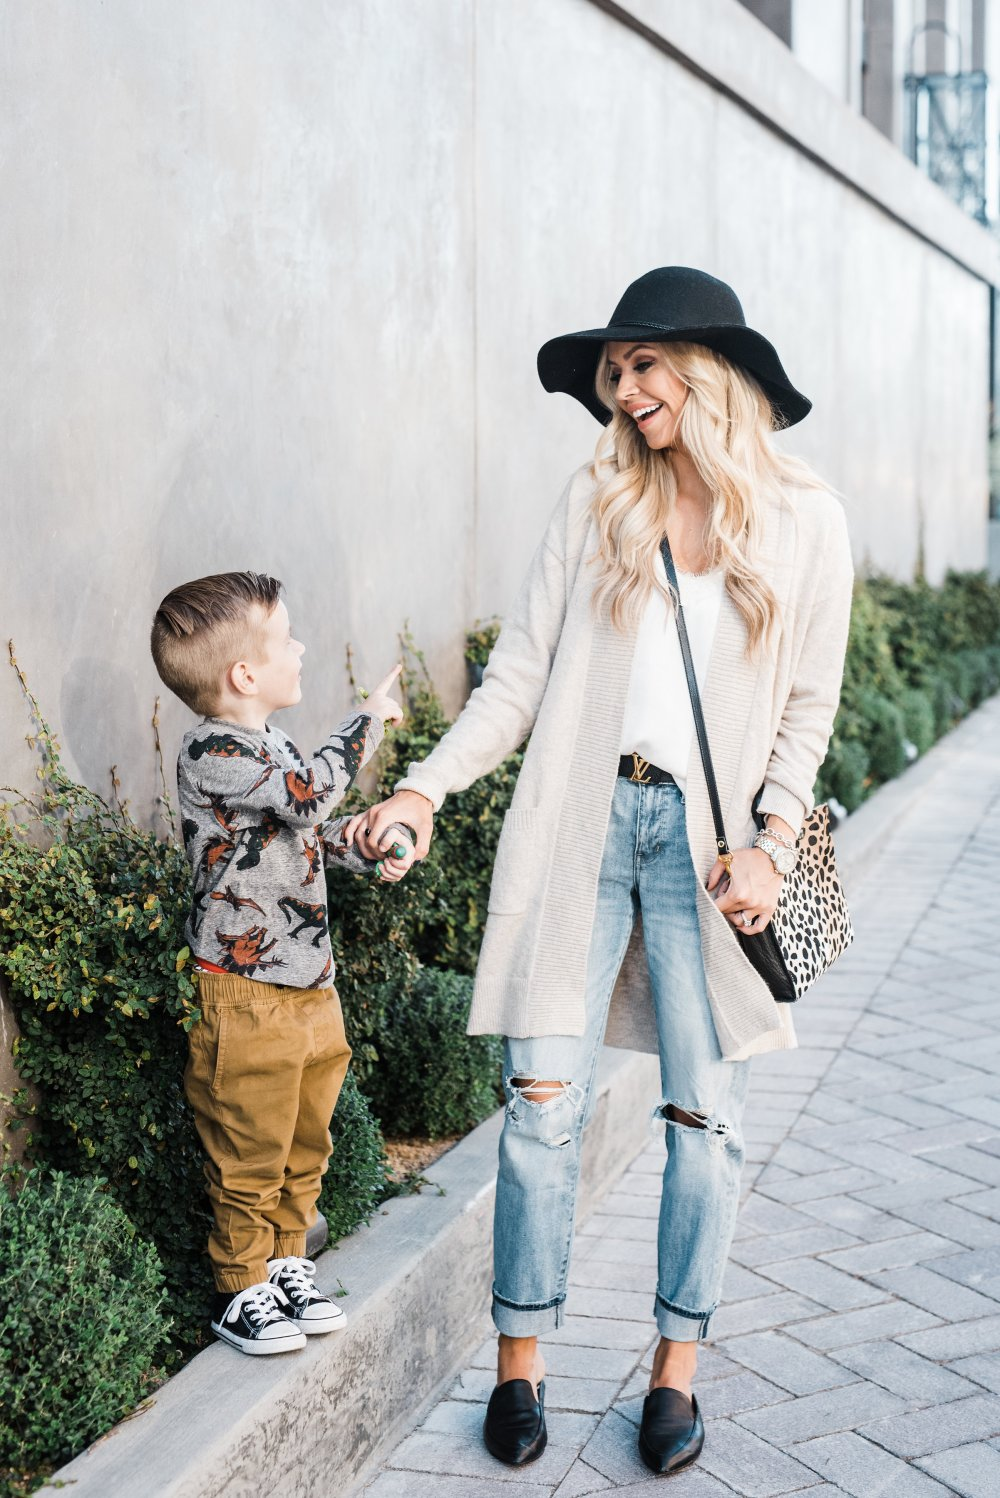 Toddler Boy fashion and a comfortable mom outfit! We are ready for a day out for some mother-son bonding time!